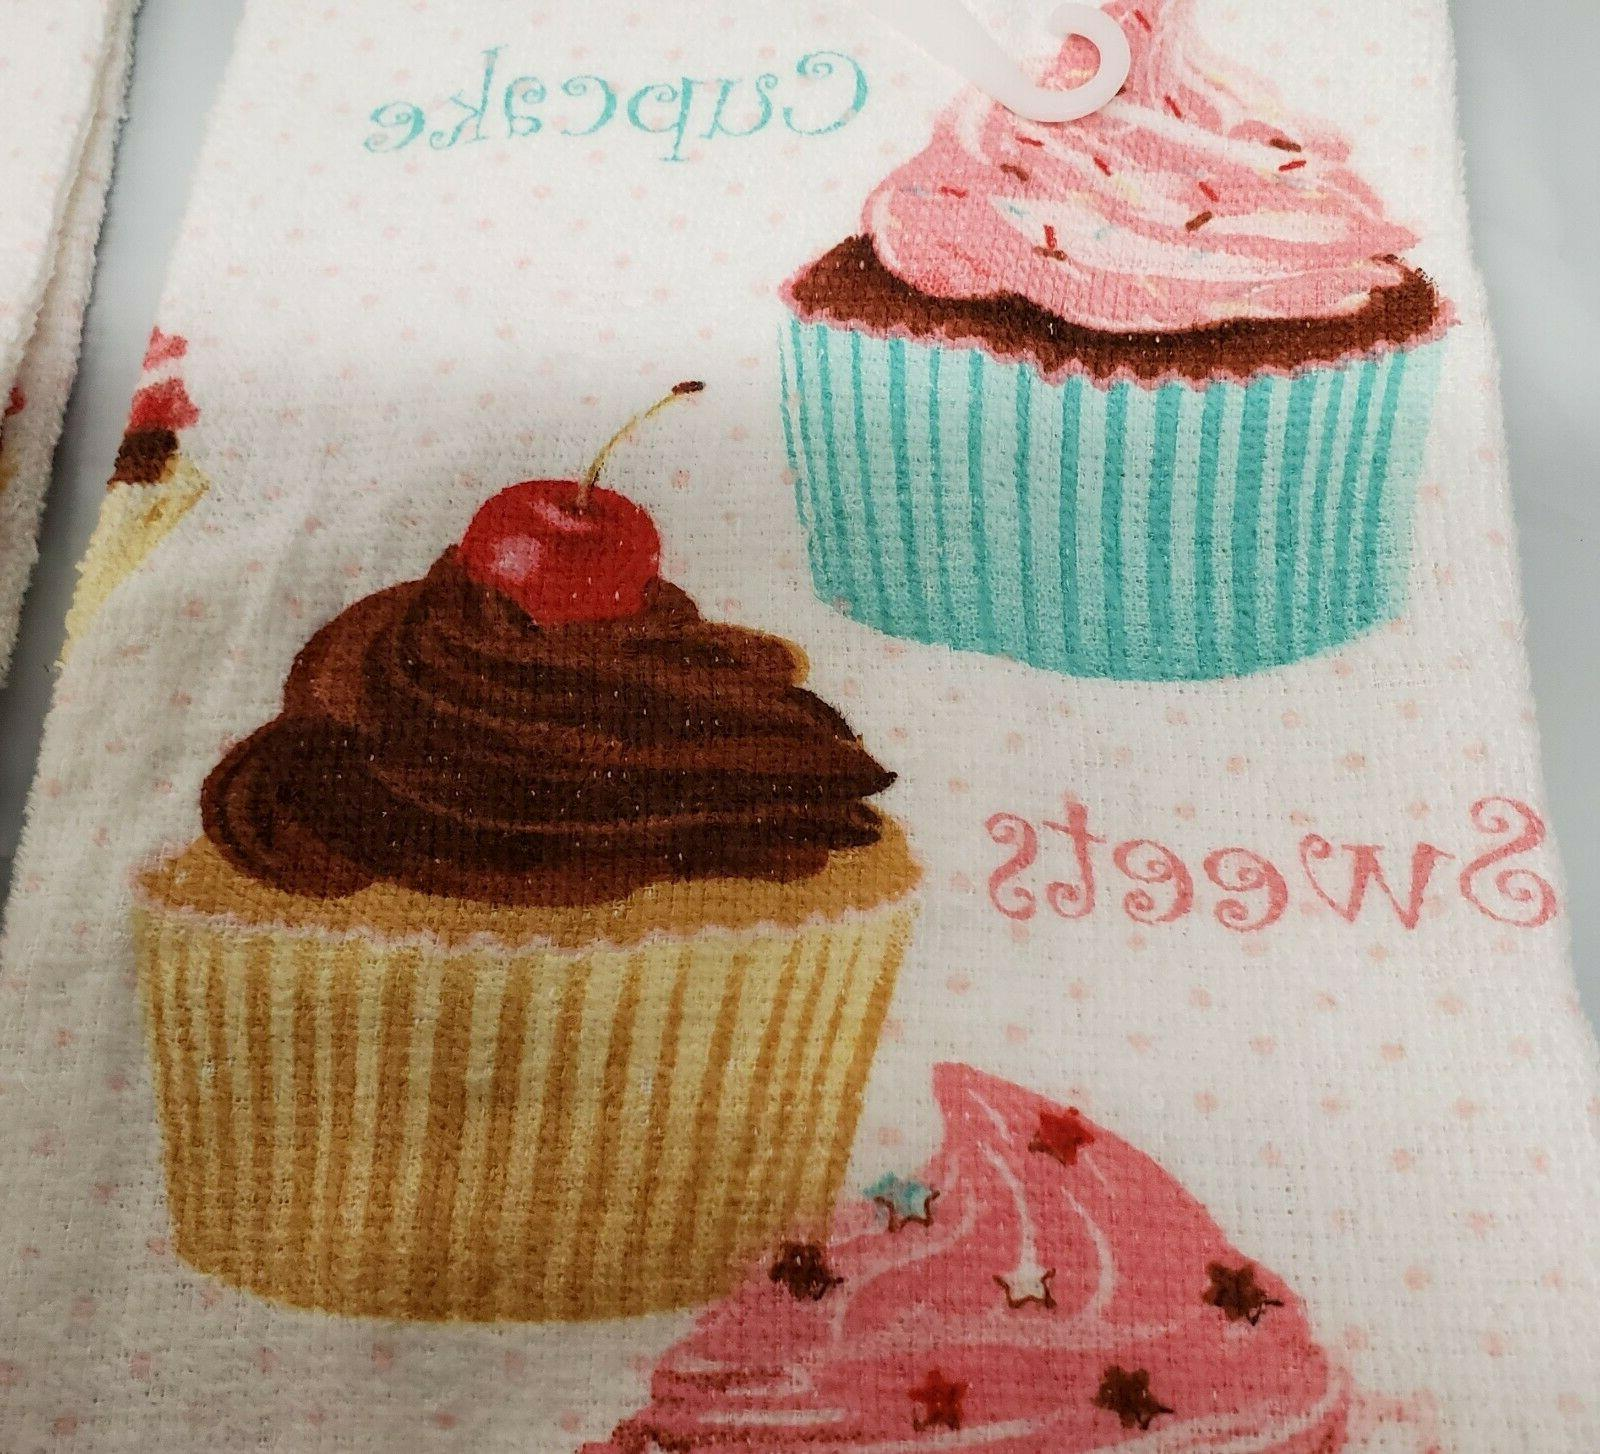 2 TOWELS SWEETS, OF CUPCAKES, GE